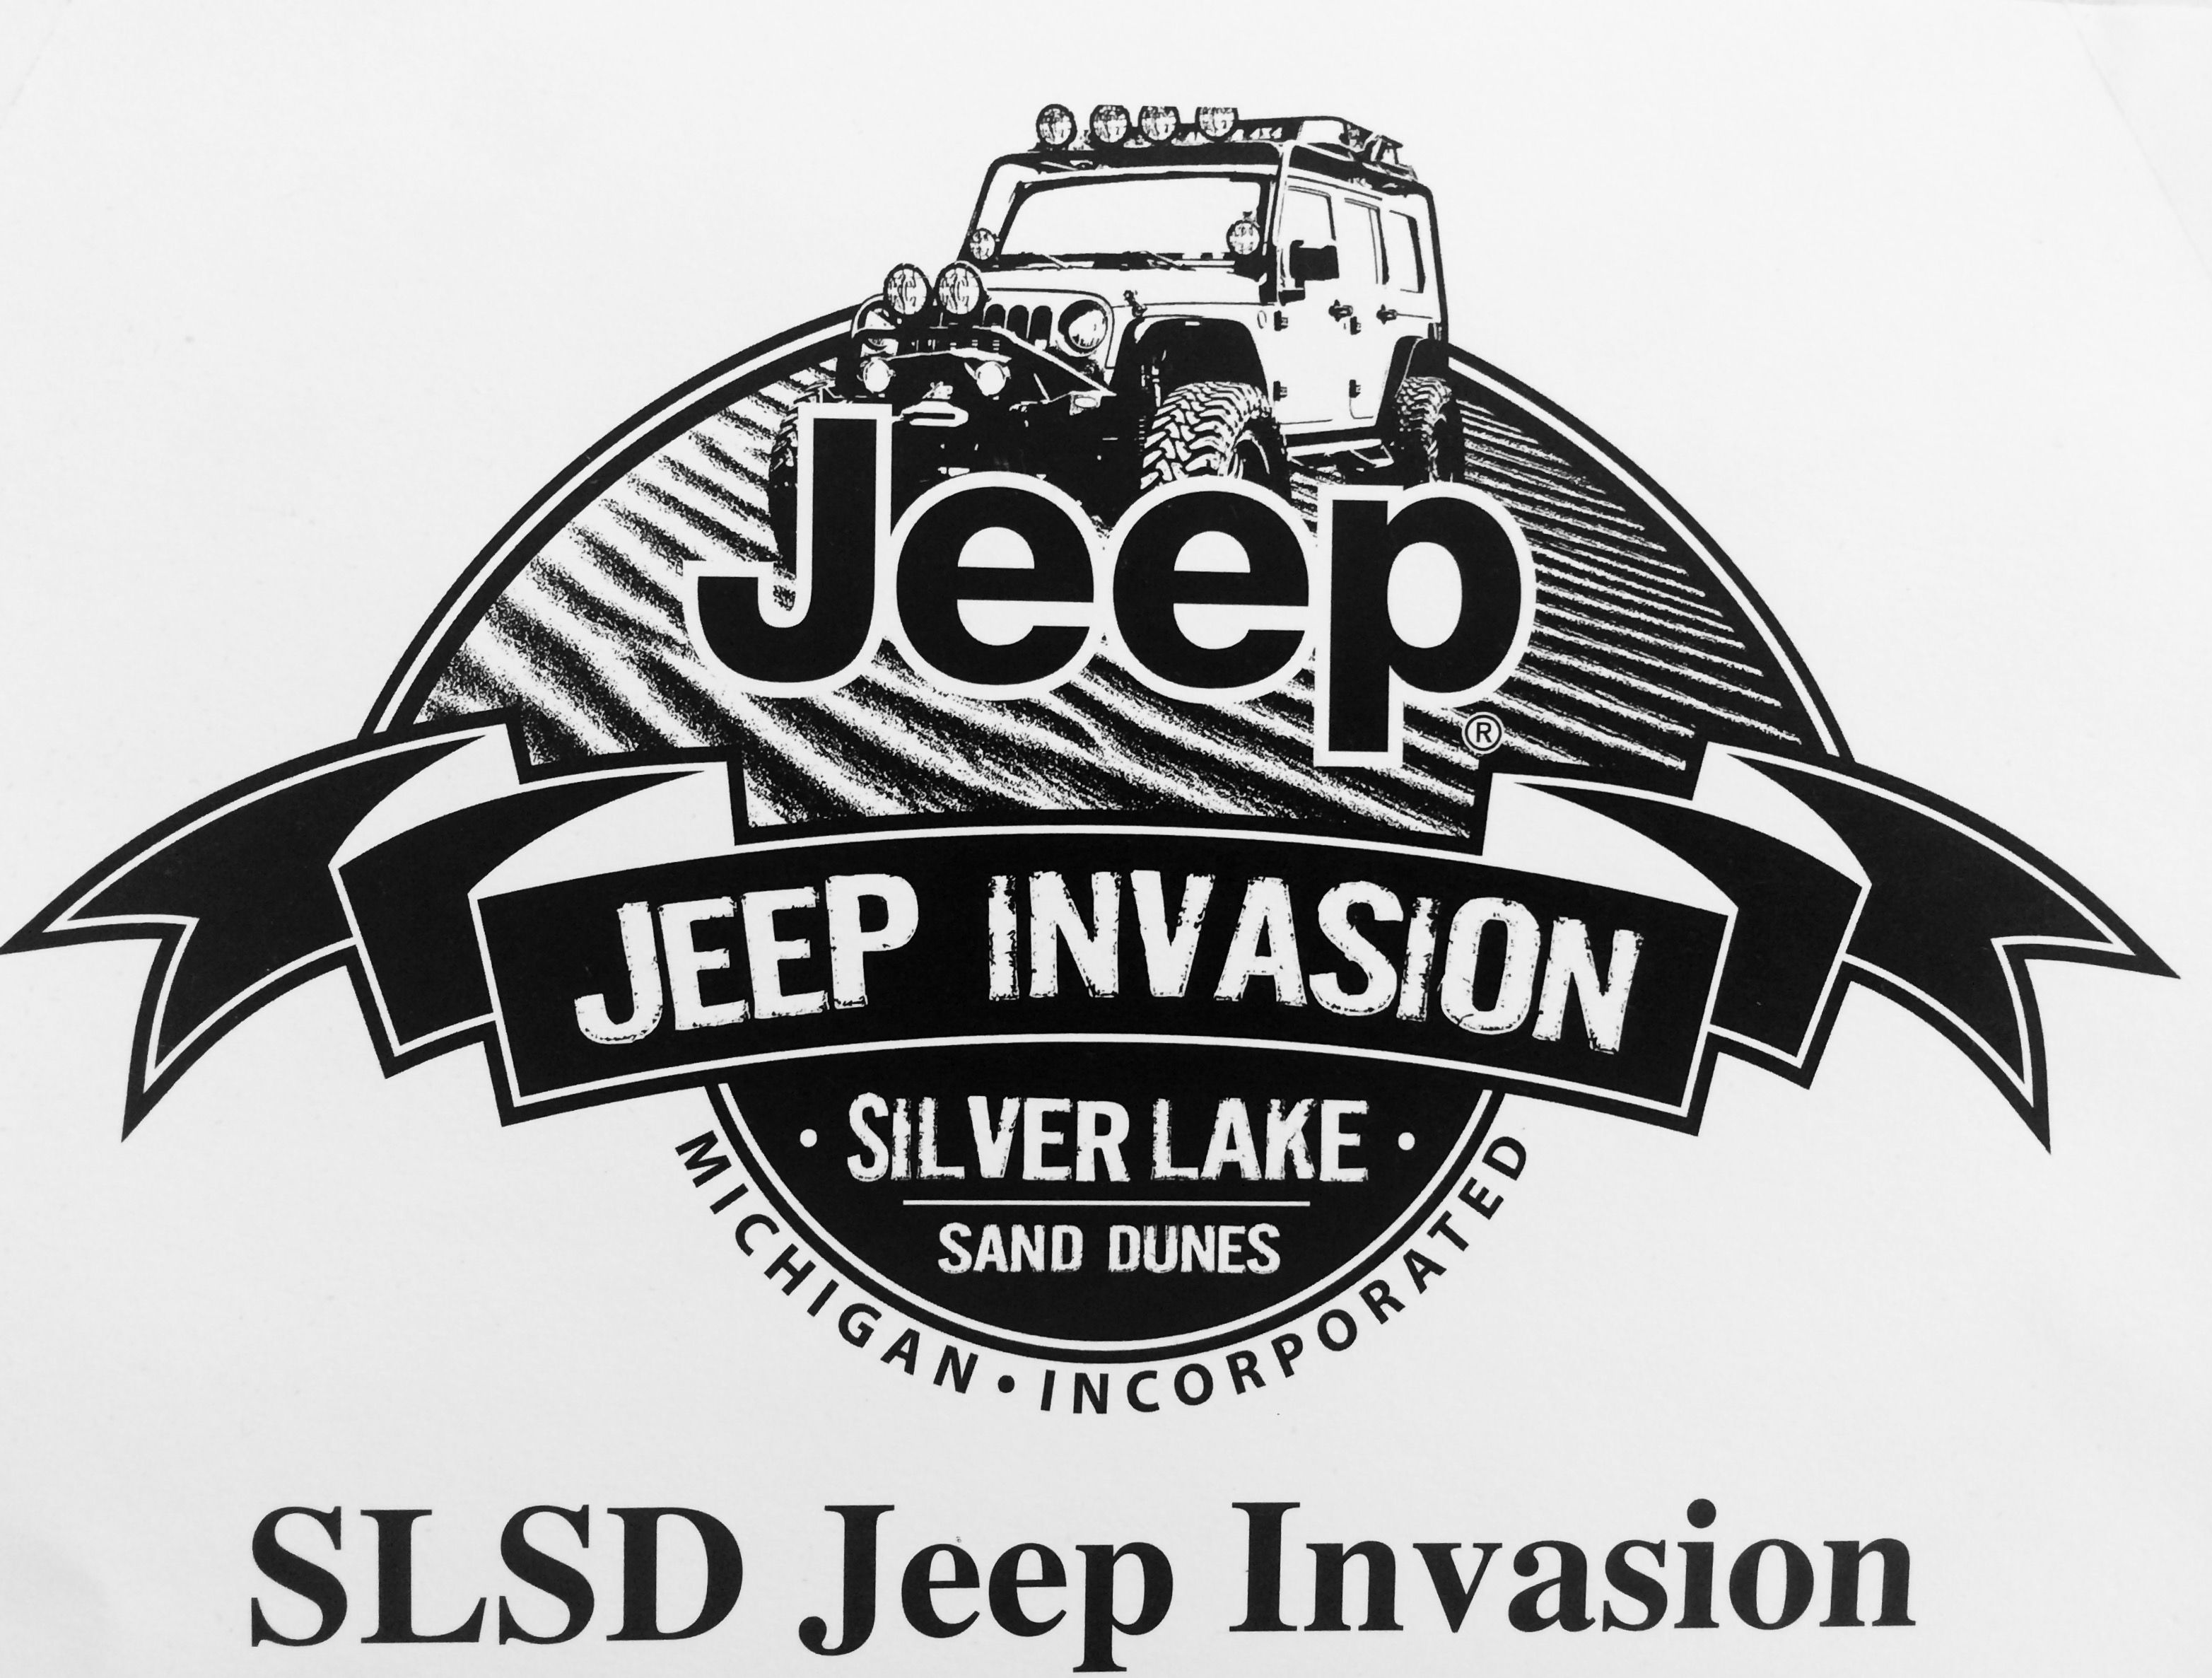 Jeep Invasion This Weekend Silver Lake Sand Dunes Silver Lake